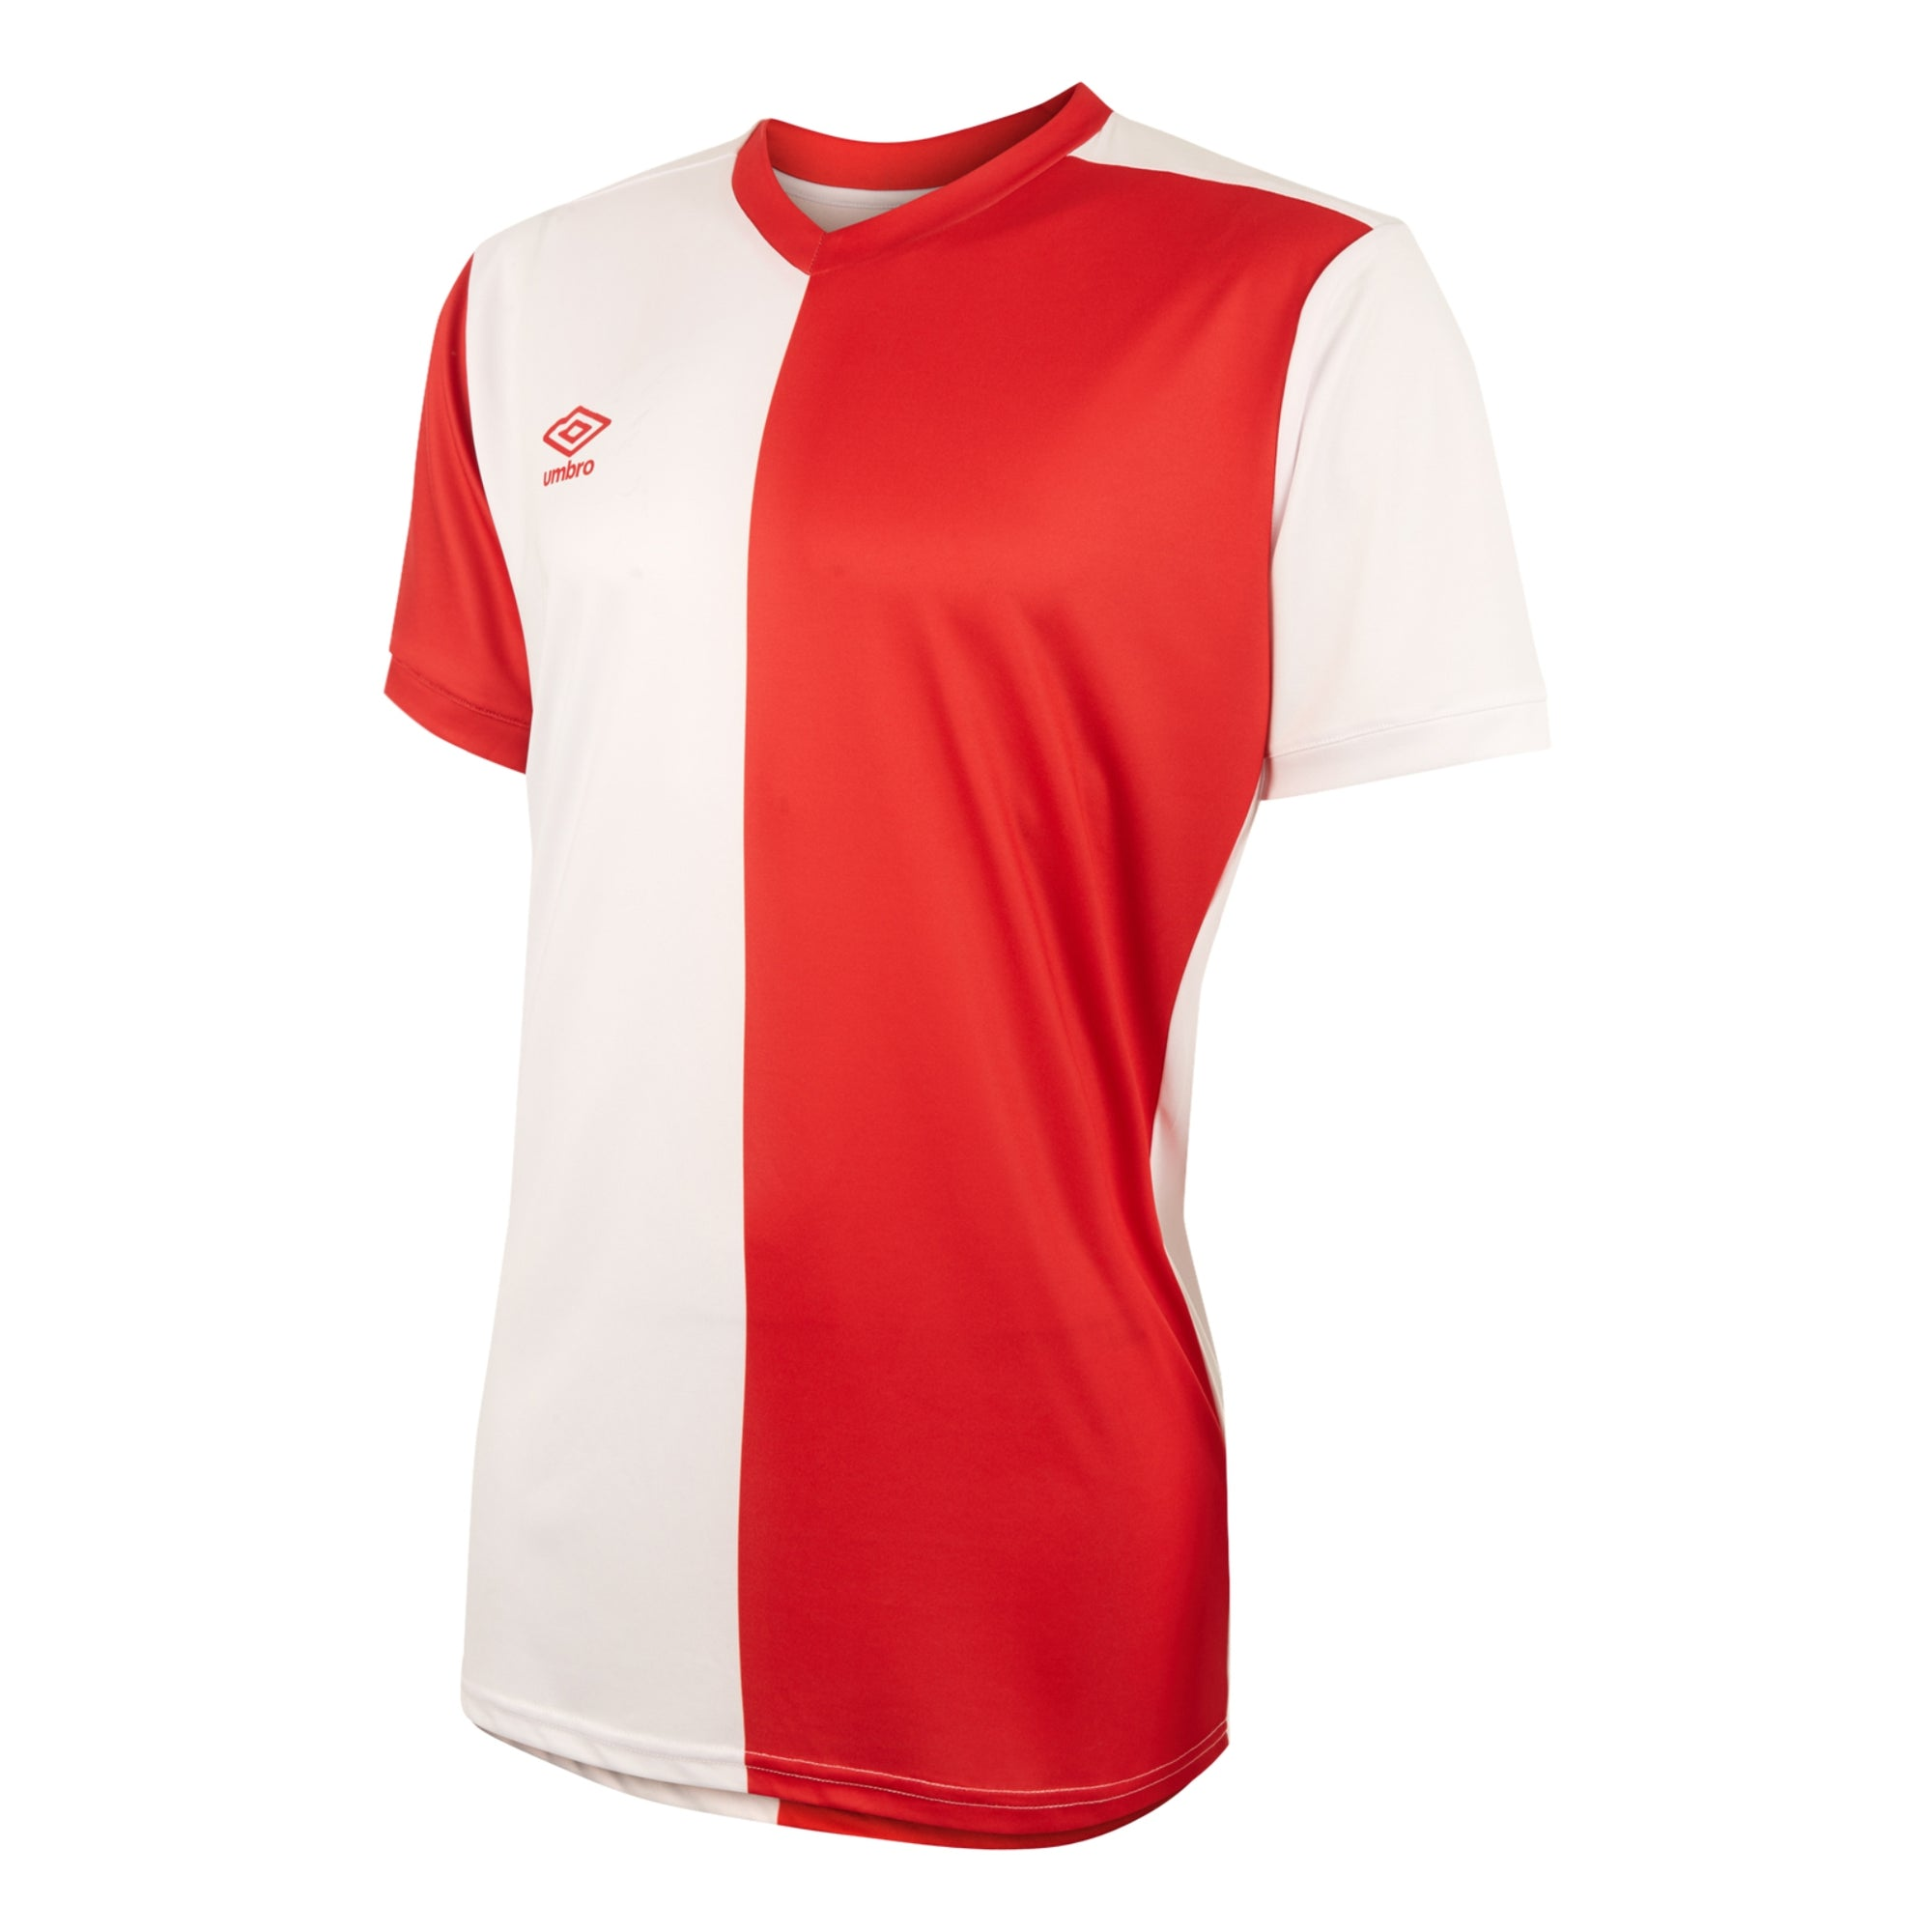 Umbro 50/50 SS Jersey - Vermillion/White